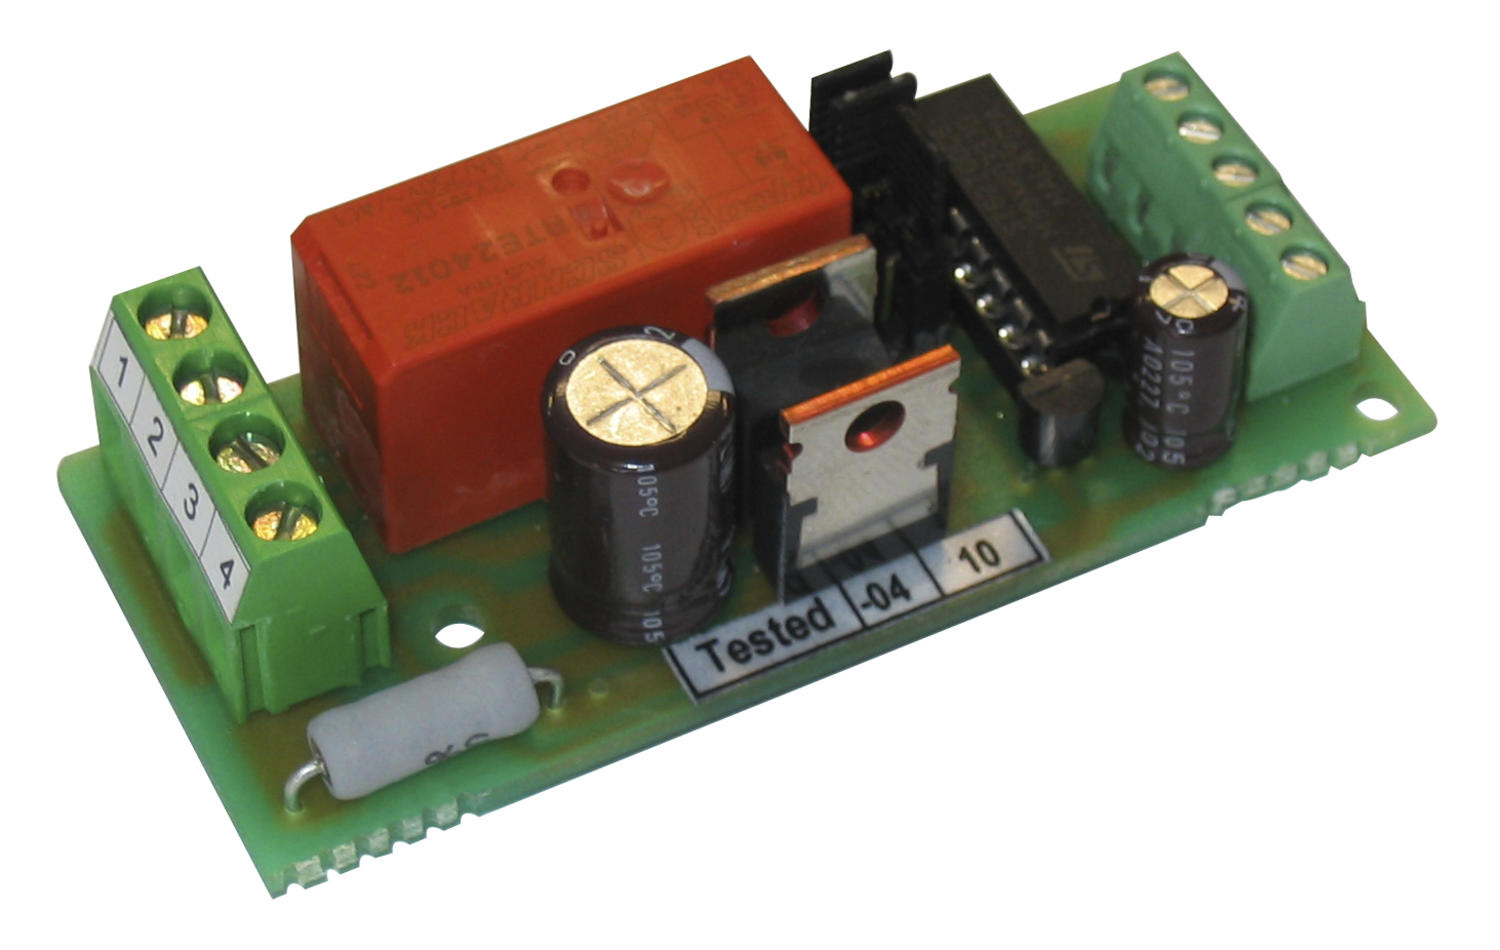 EM-165 DC motor positioning drive 12-32 V dc, 5 A, analogue FB